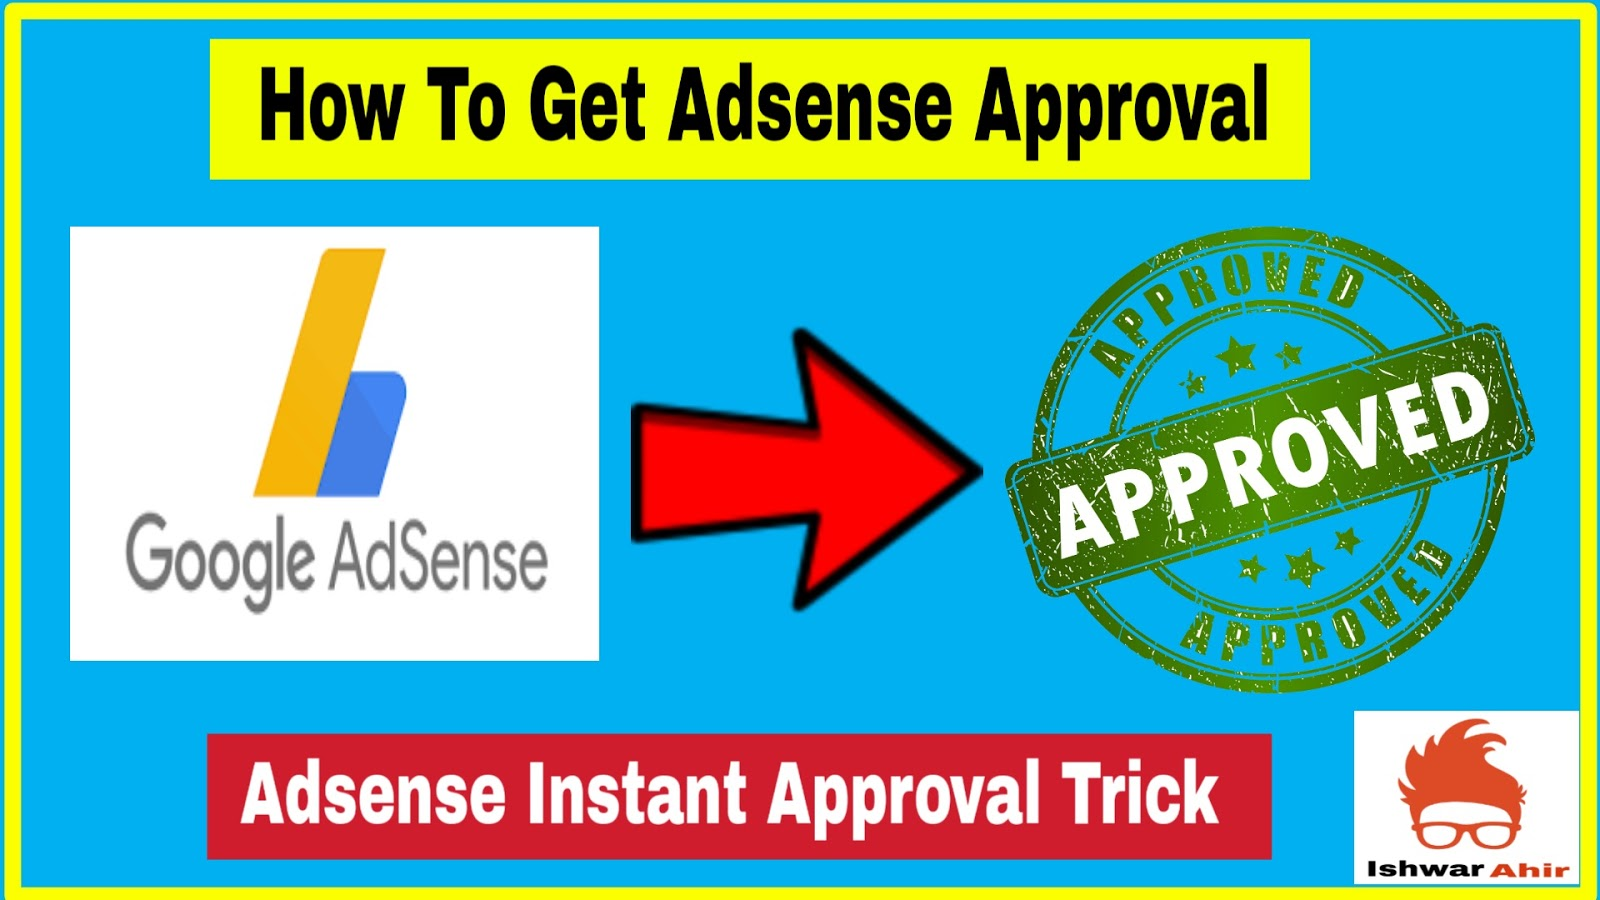 How to Get Adsense Approval Instantly